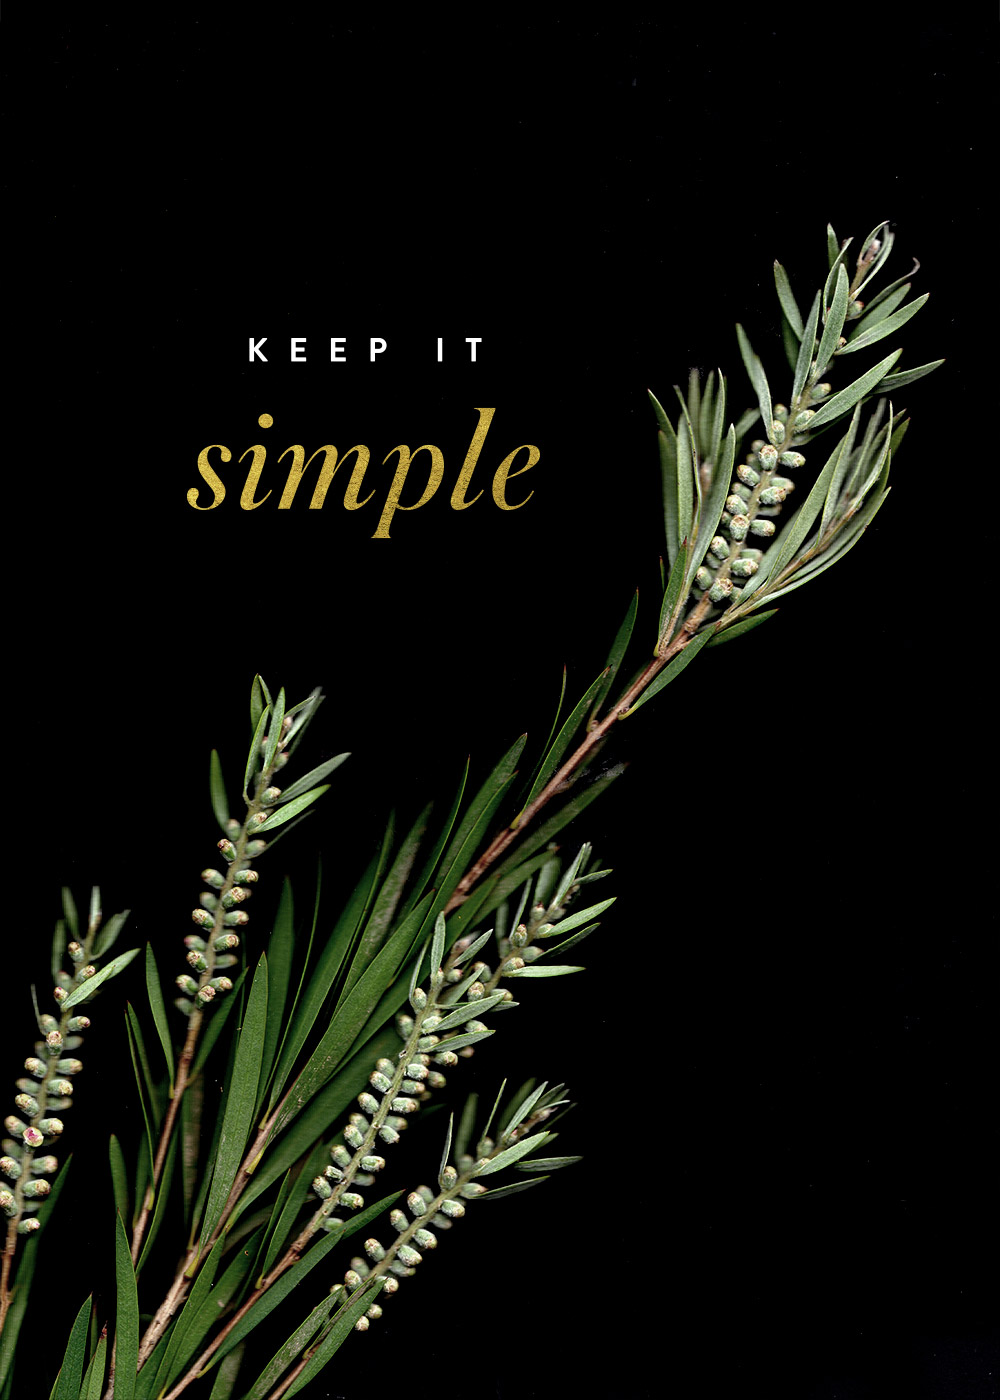 Nubby Twiglet | A Little Reminder: There's Beauty in Simplicity